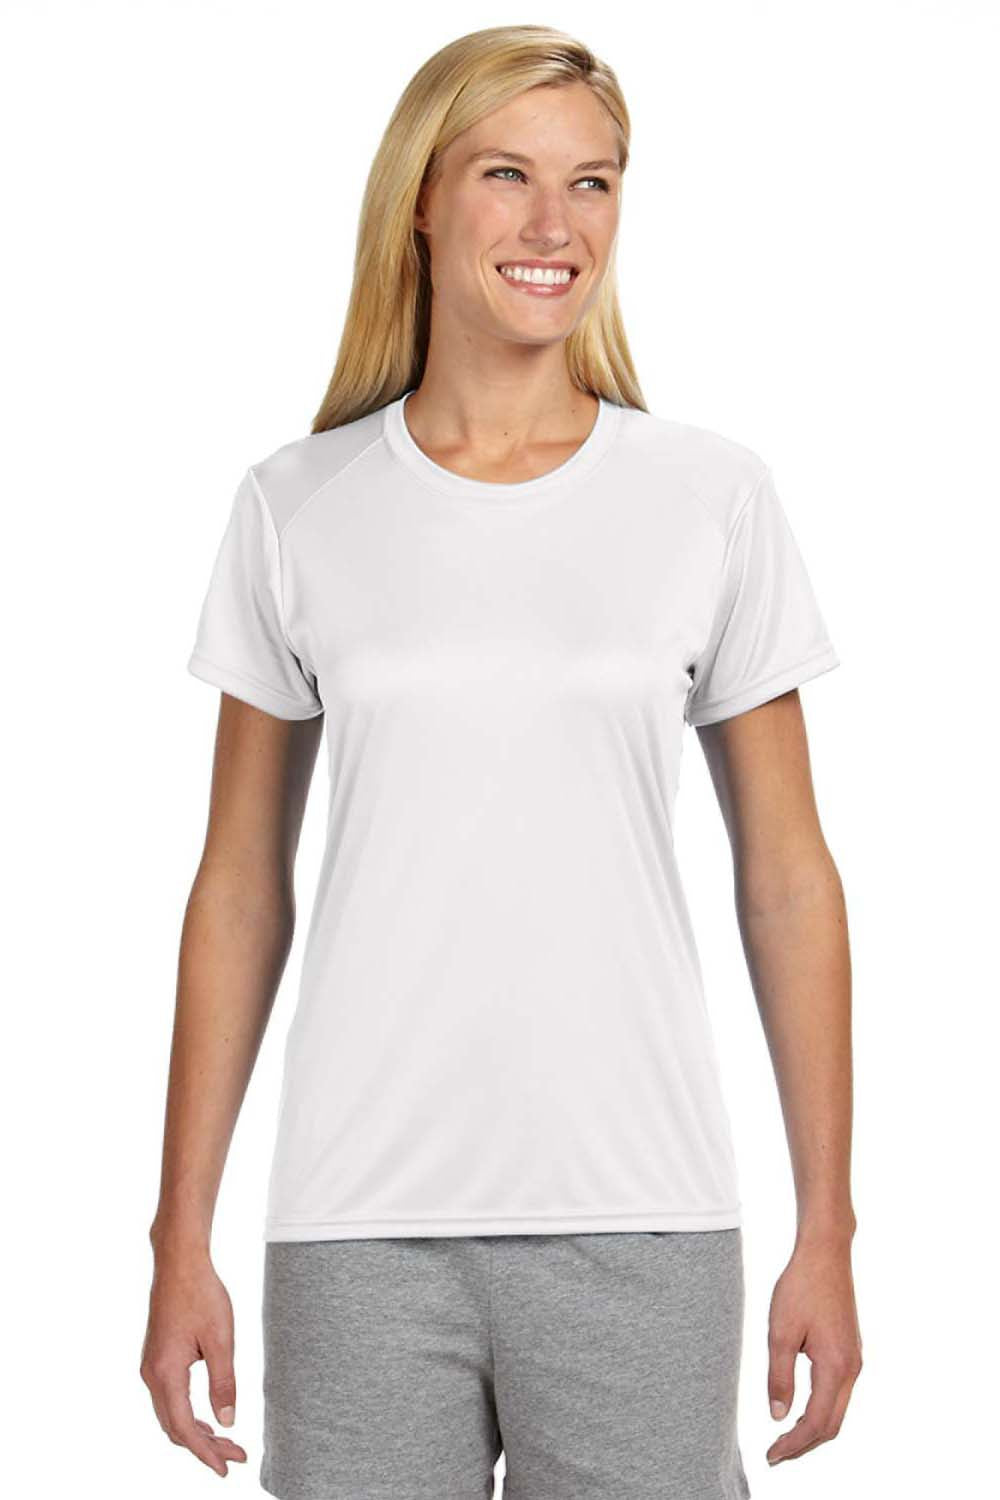 A4 NW3201 Womens Cooling Performance Moisture Wicking Short Sleeve Crewneck T-Shirt White Front